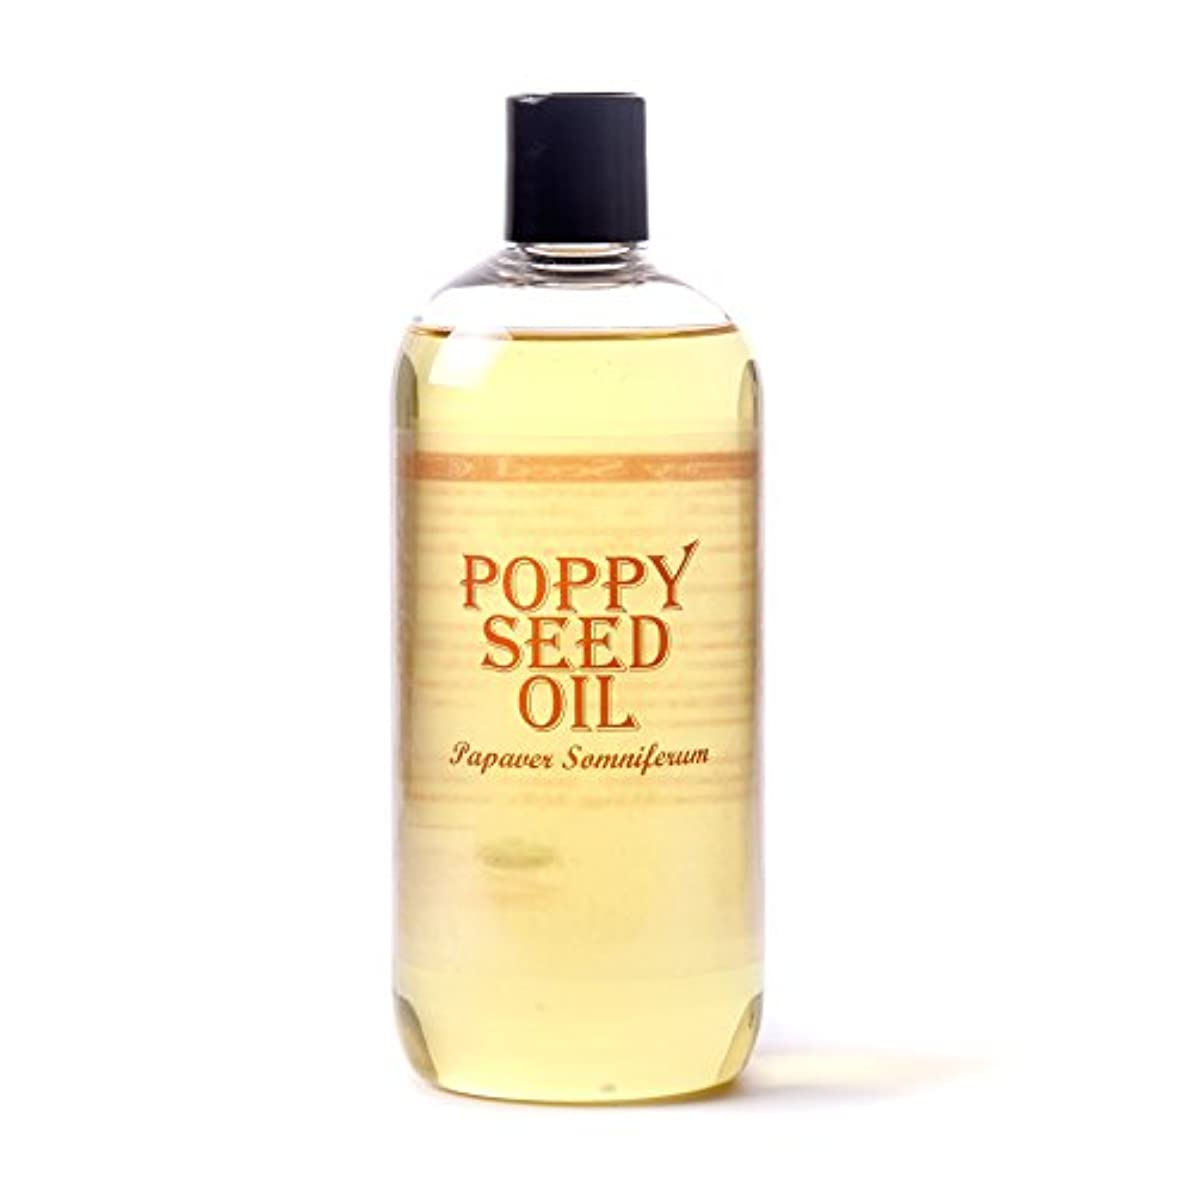 豊かにする仮定するカジュアルMystic Moments | Poppy Seed Carrier Oil - 500ml - 100% Pure